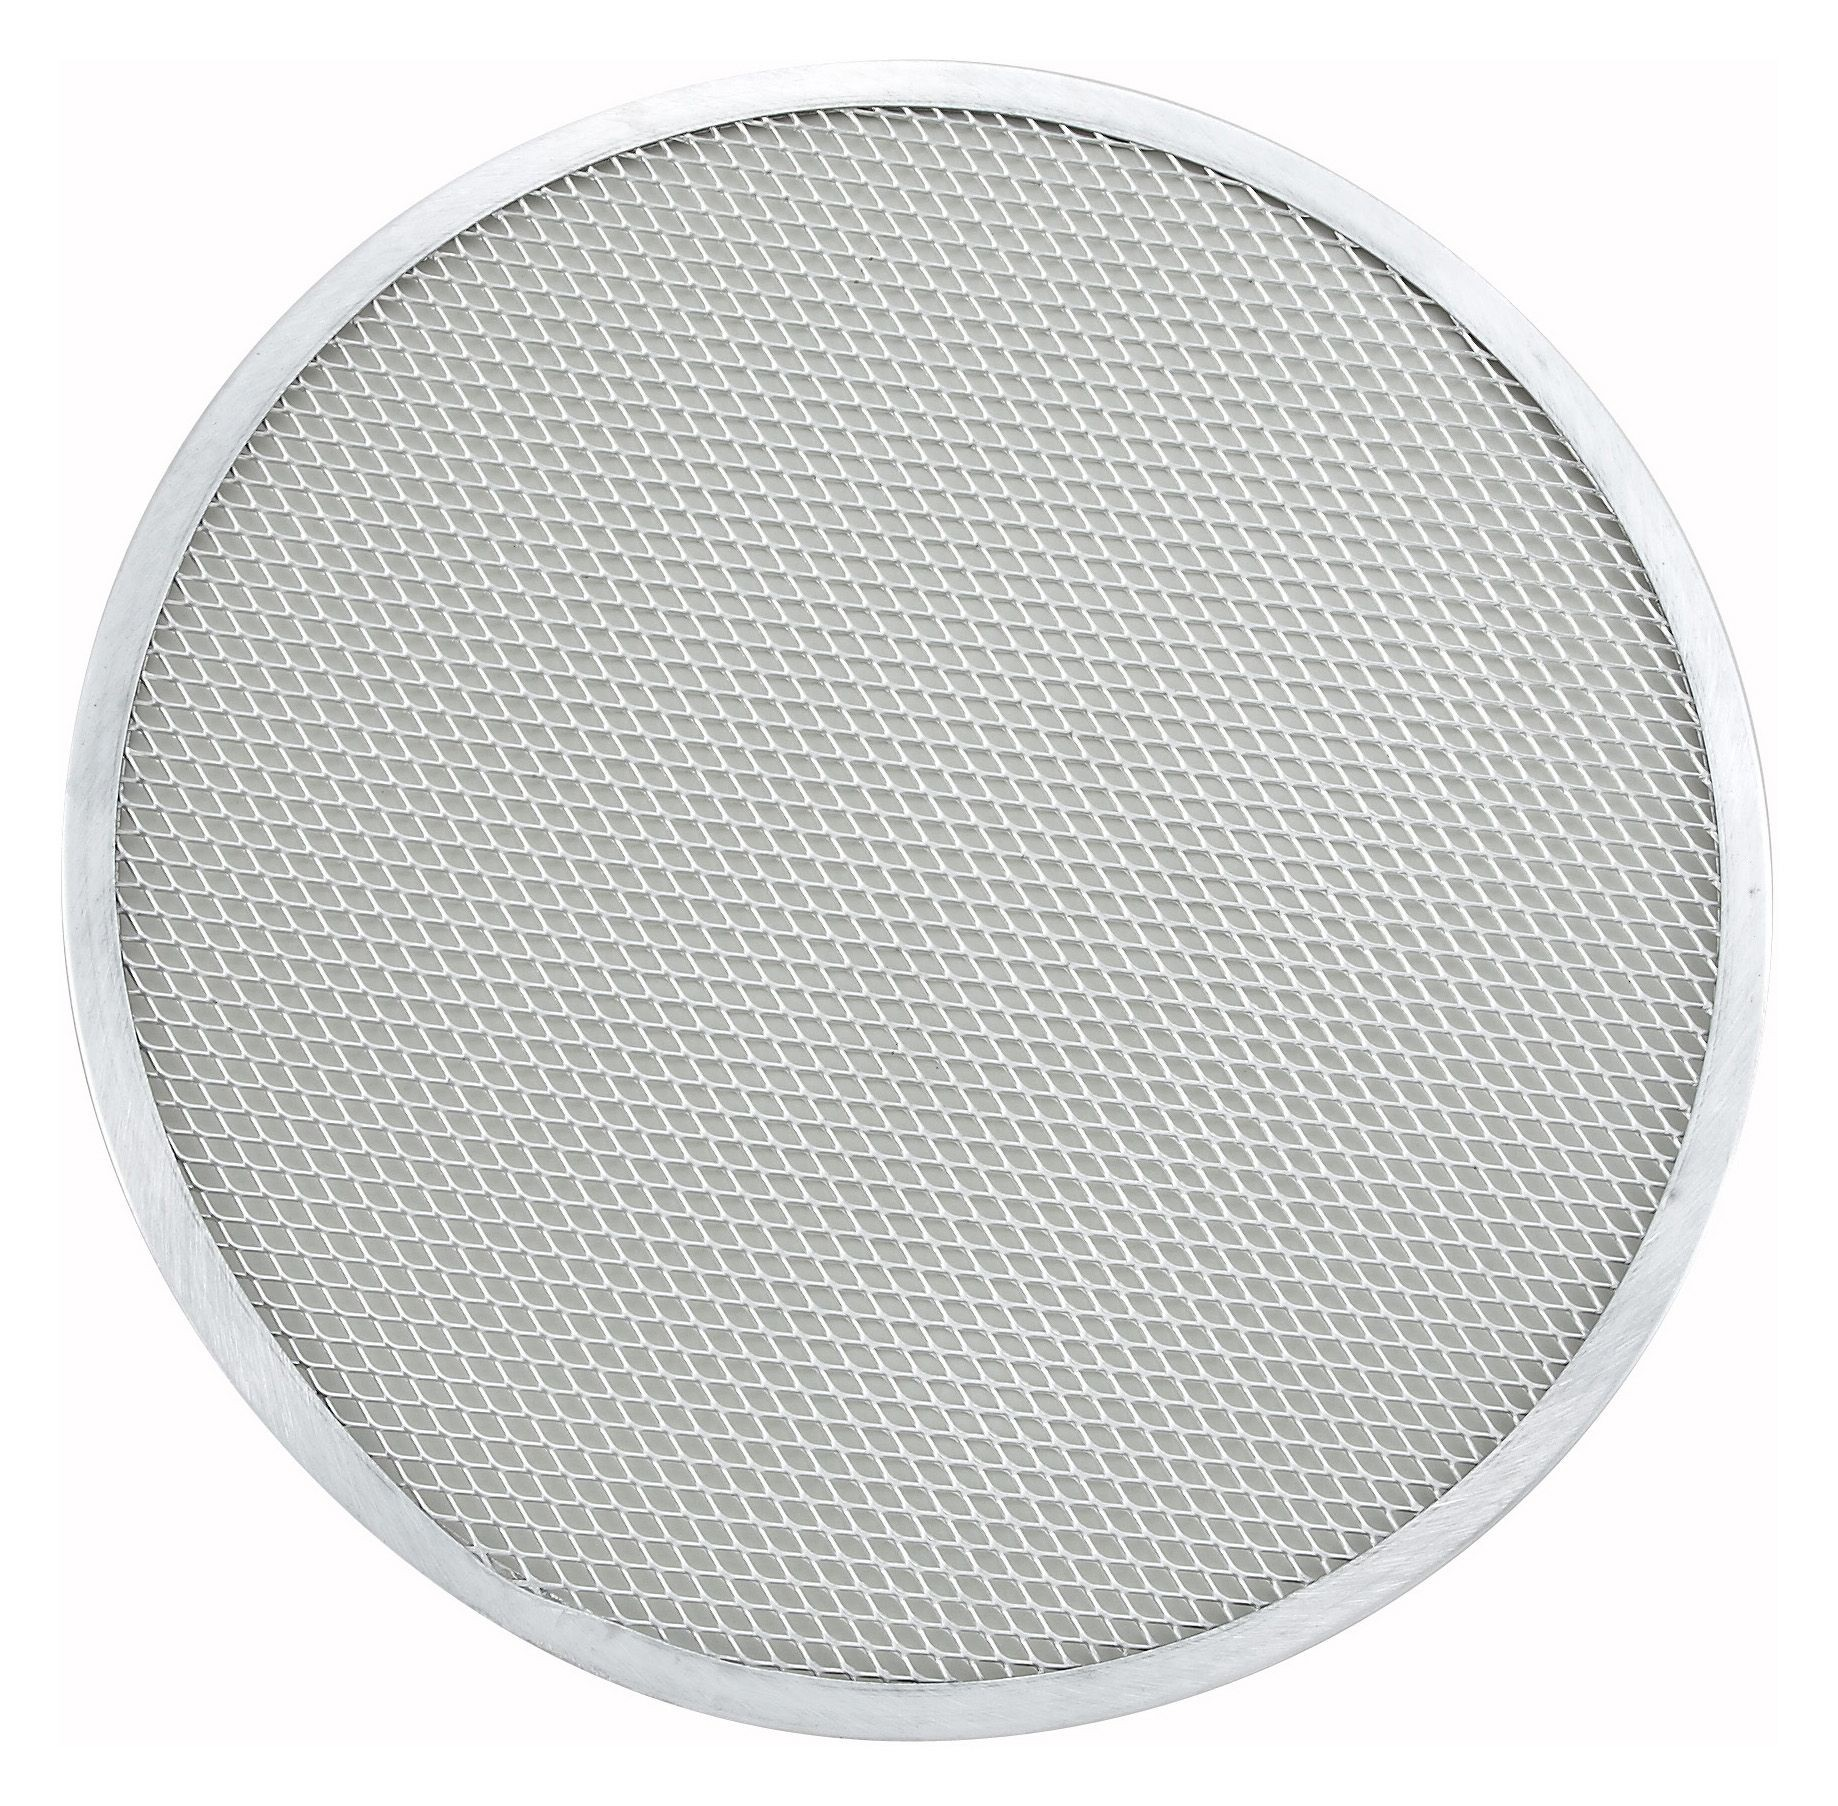 Seamless Aluminum Pizza Screen - 15